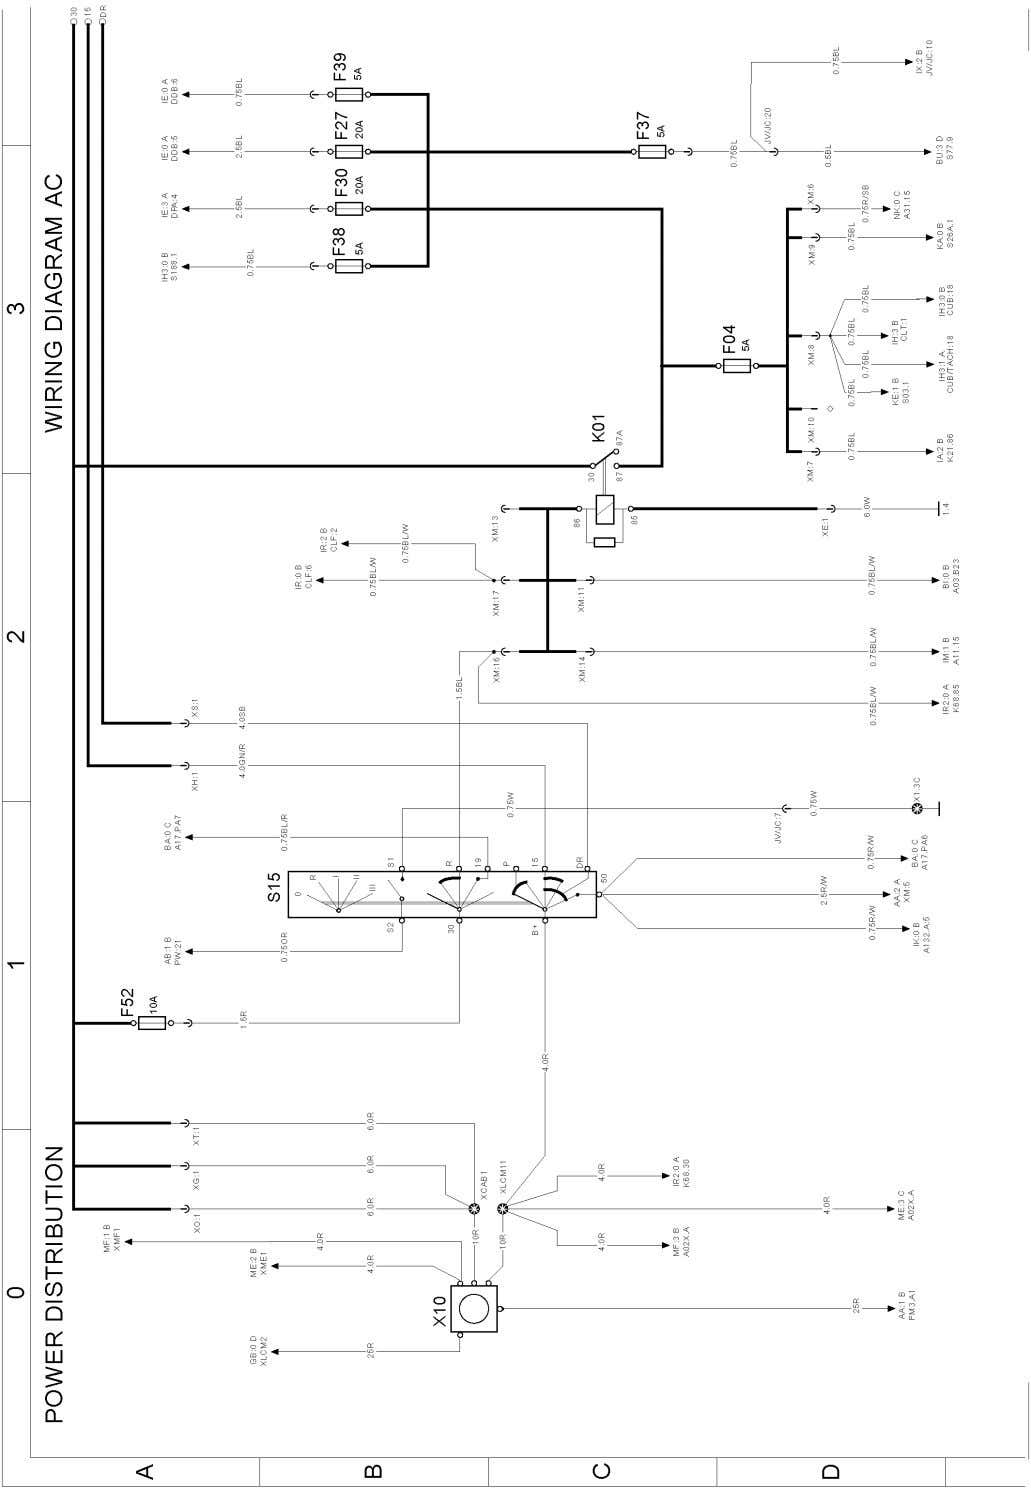 T3075968 Wiring diagram Page 9 (298)